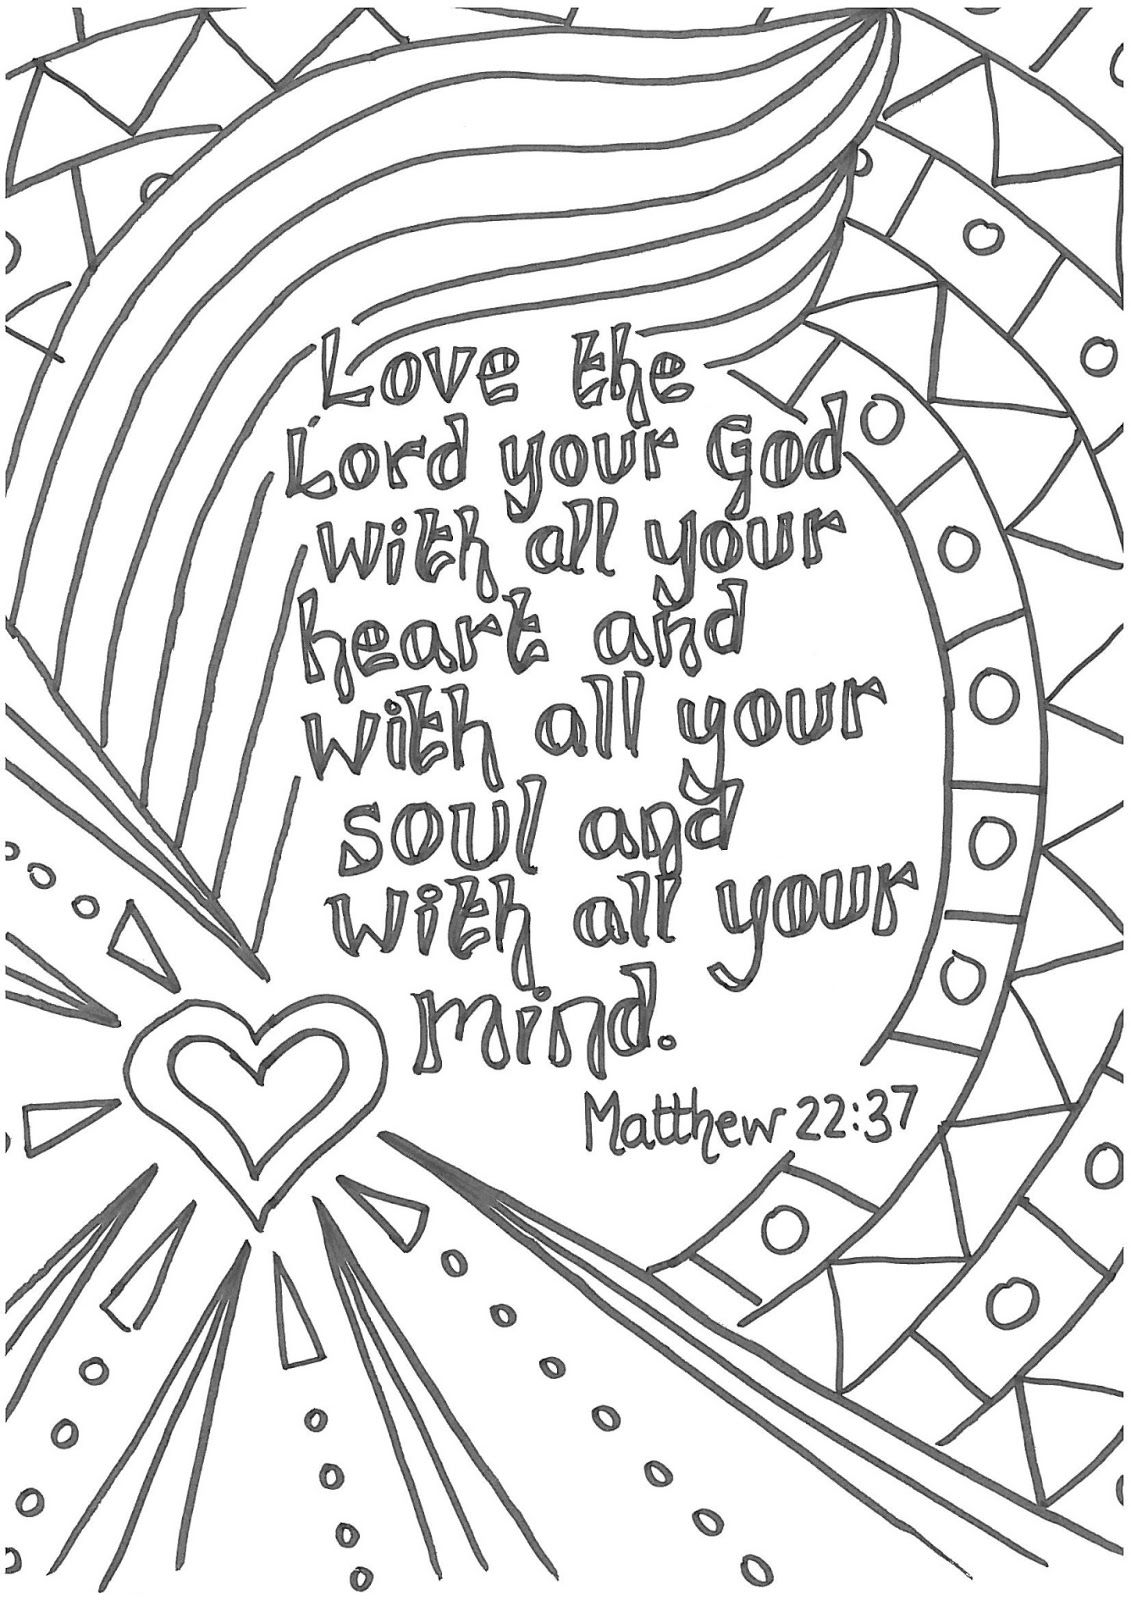 matt 2237 love the lord your god with all your heart printable prayers to